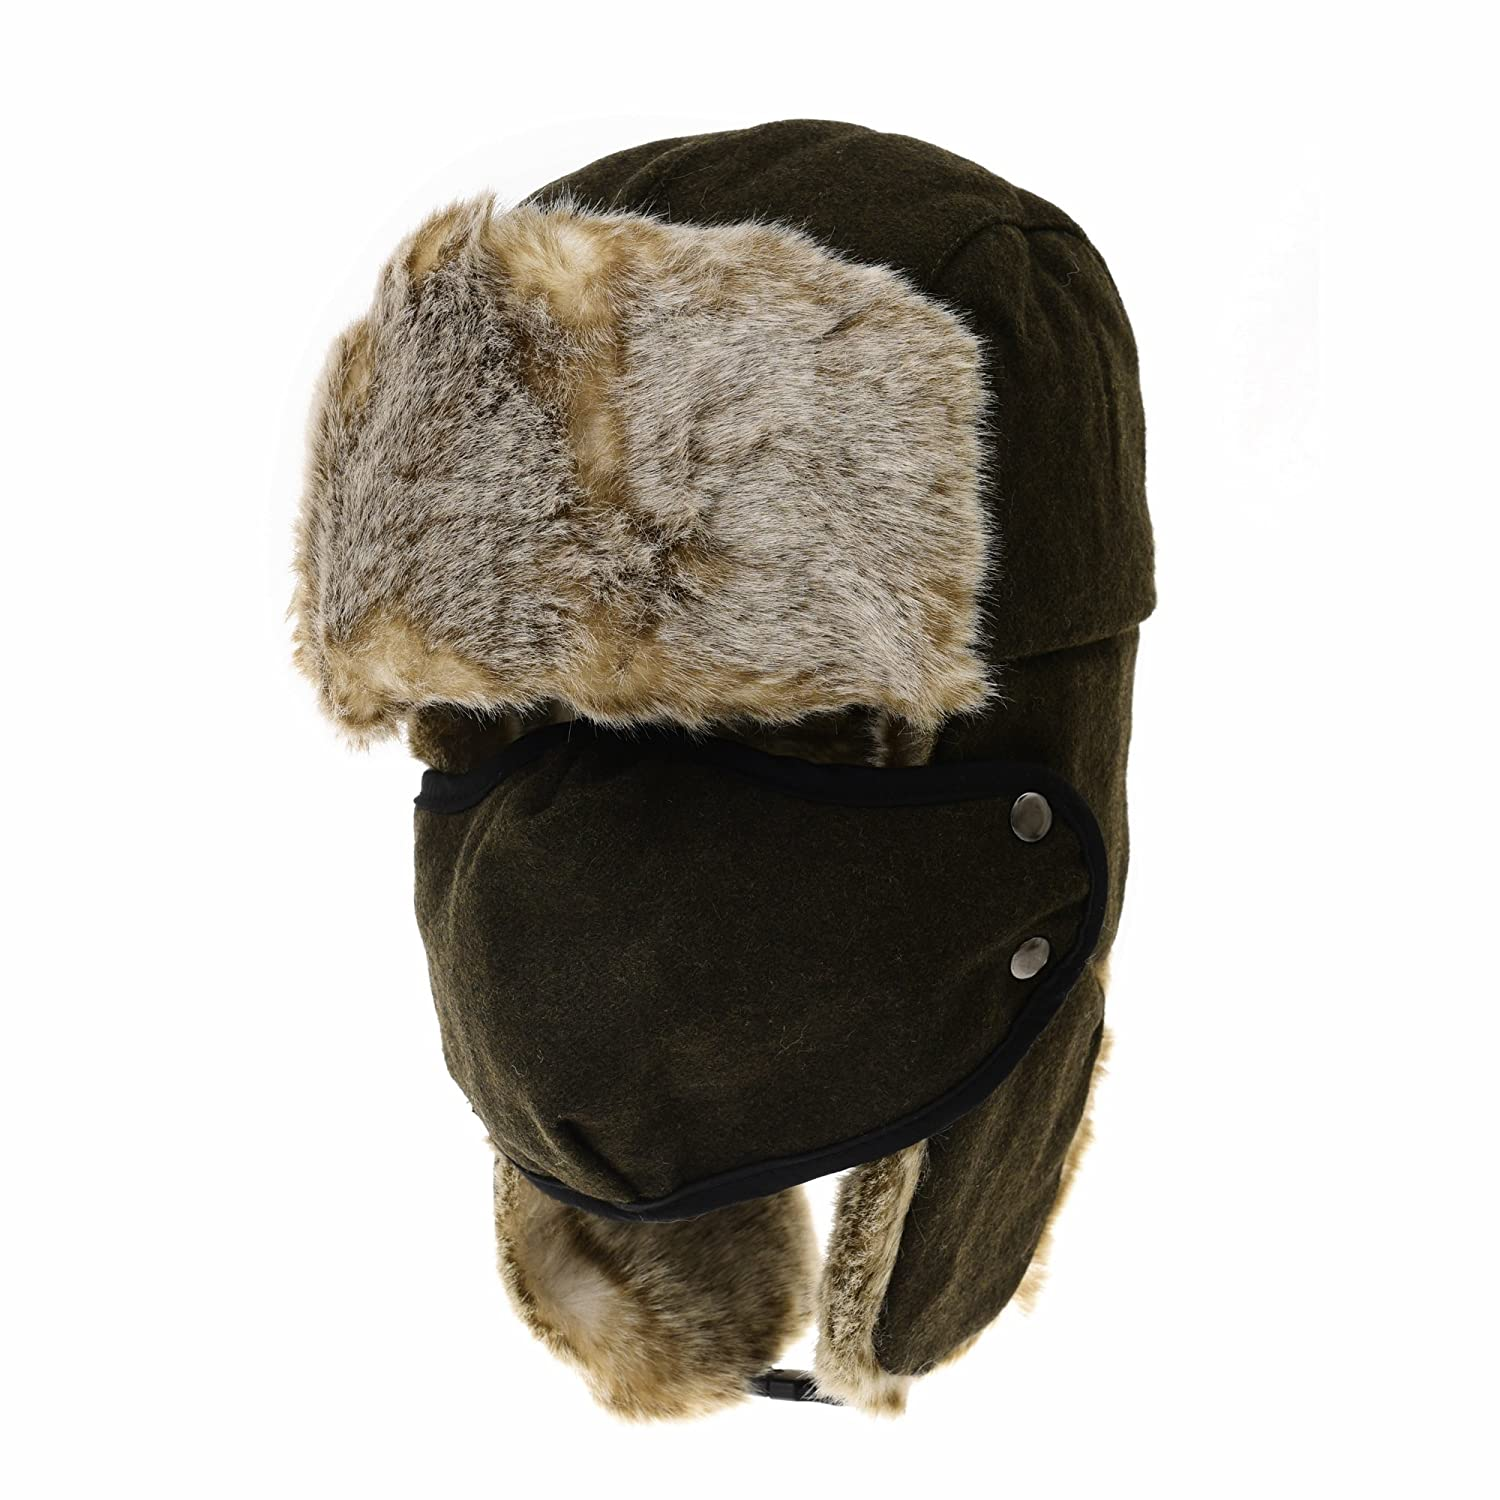 WITHMOONS Wool Russian Hat Winter Trapper Cap Faux Fur AC7140 (Green) at  Amazon Men s Clothing store  46855f6a2